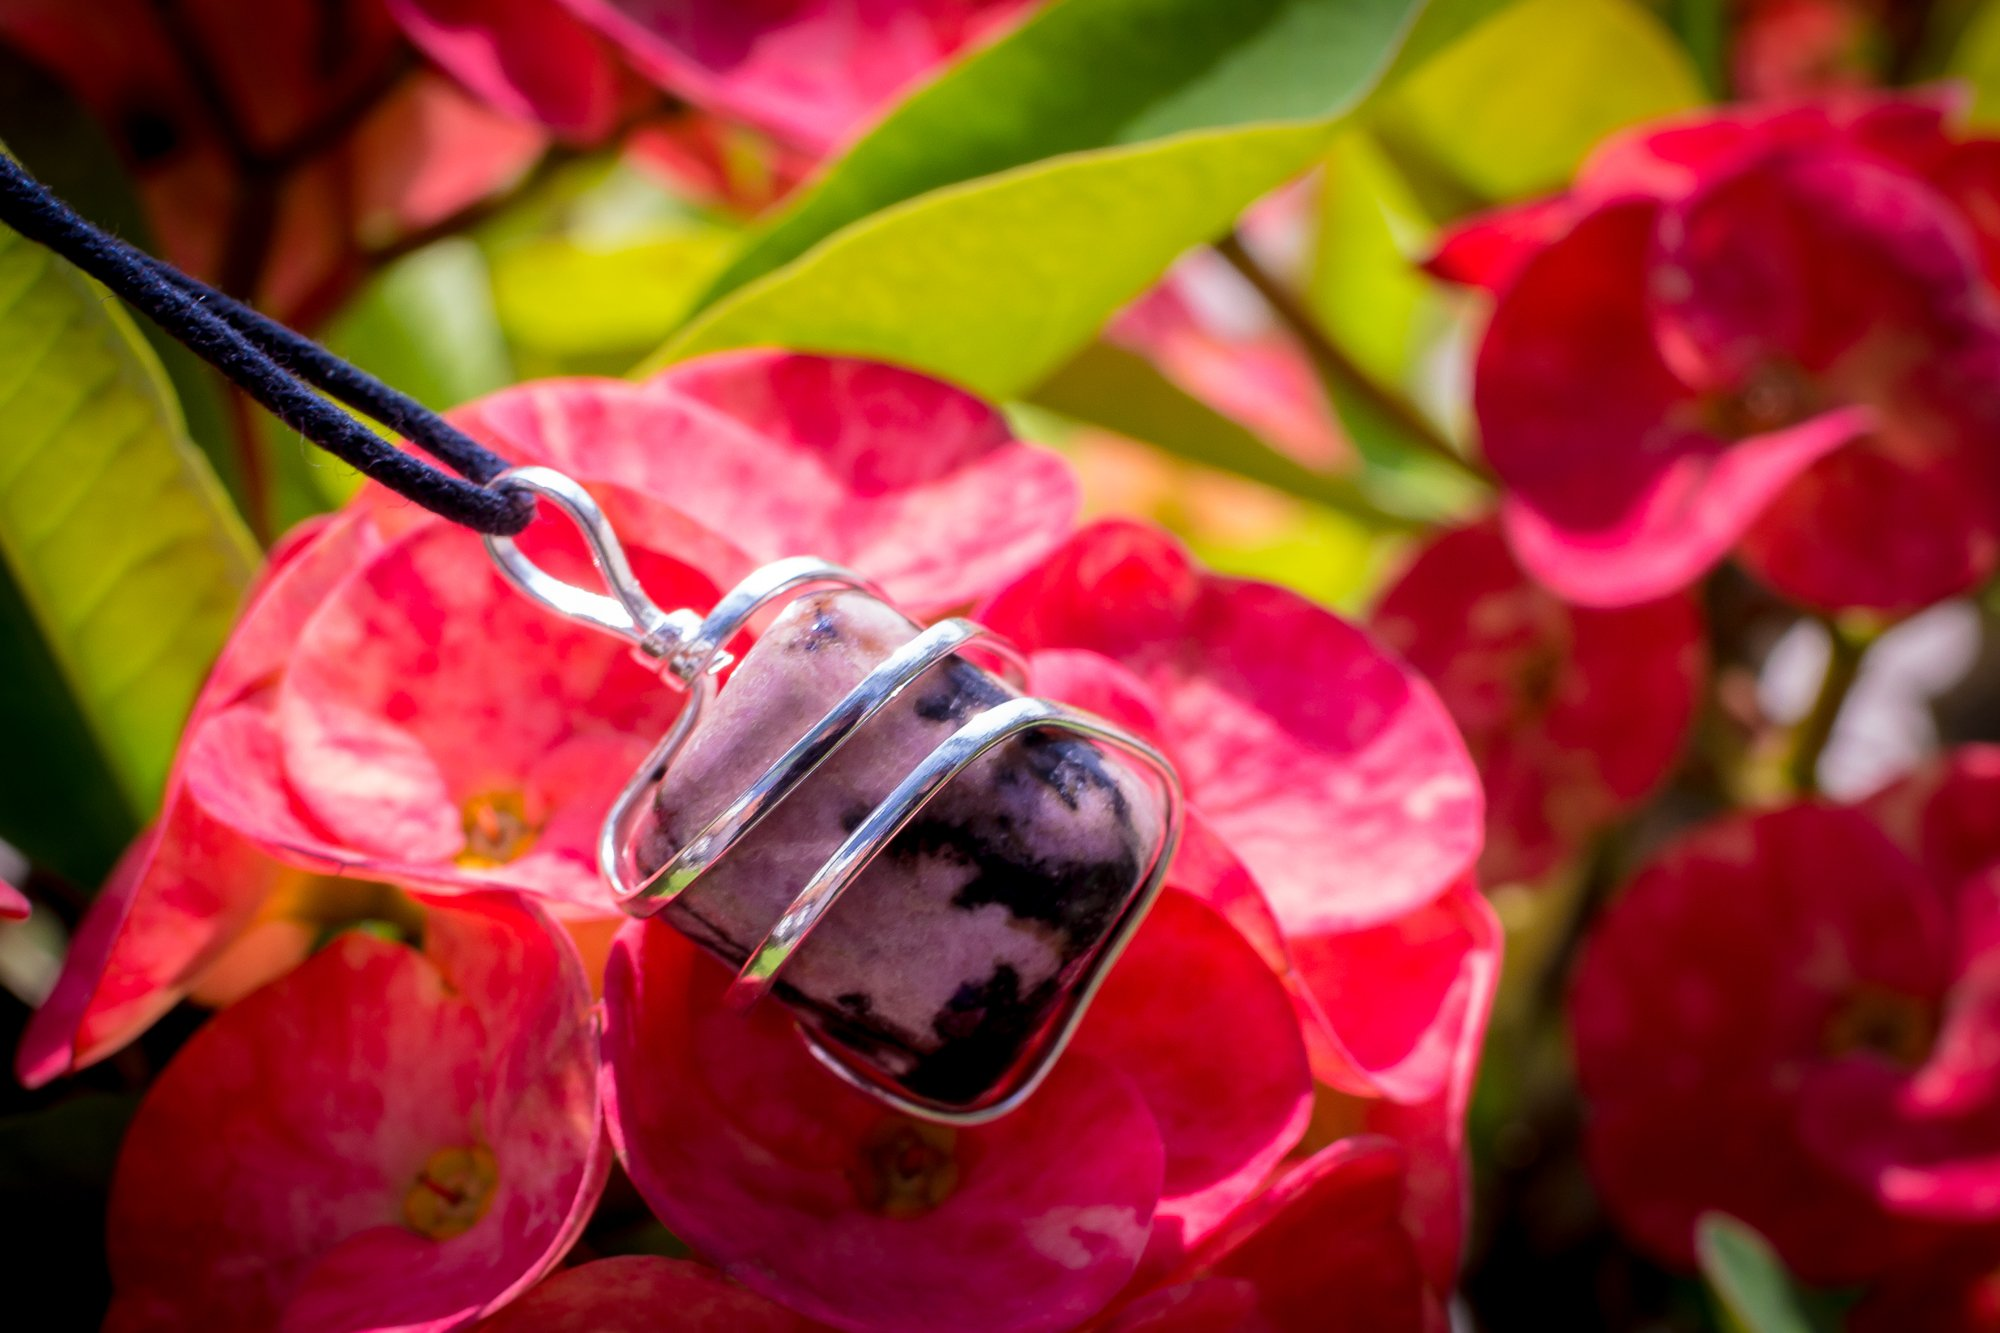 Rhodonite Crystal Pendant Necklace – Compassion Forgiveness Release of Fear Emotional Healing Heartbreak Relationships - Authentic Stone on Adjustable Length Cord - Real Gemstone Chakra Healing Charm by Ayana Wellness (Image #1)